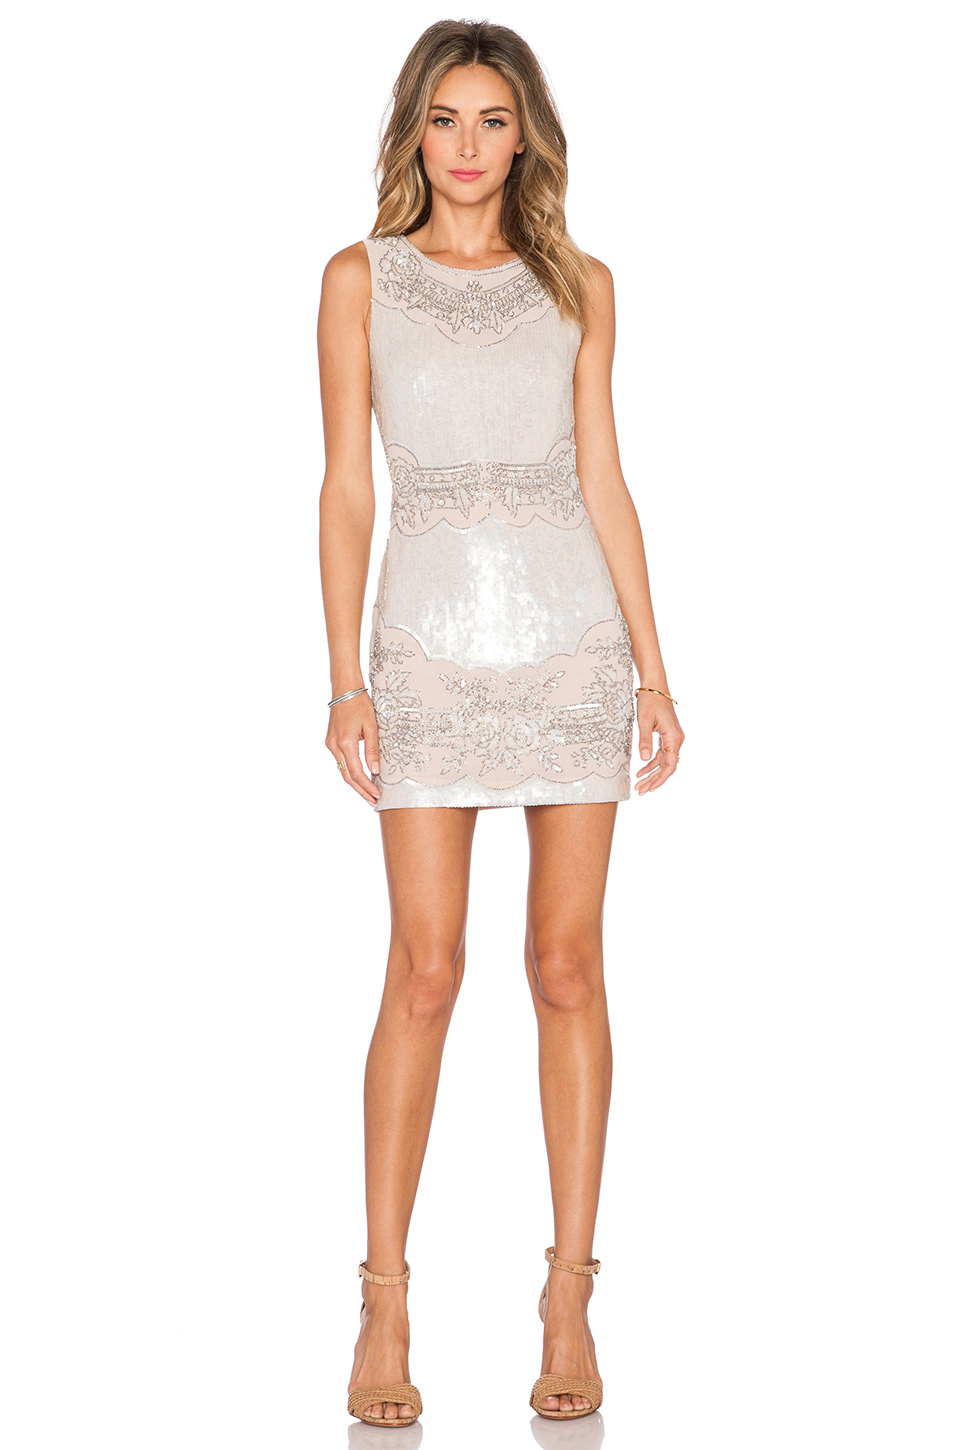 Pearl sequin lace dress